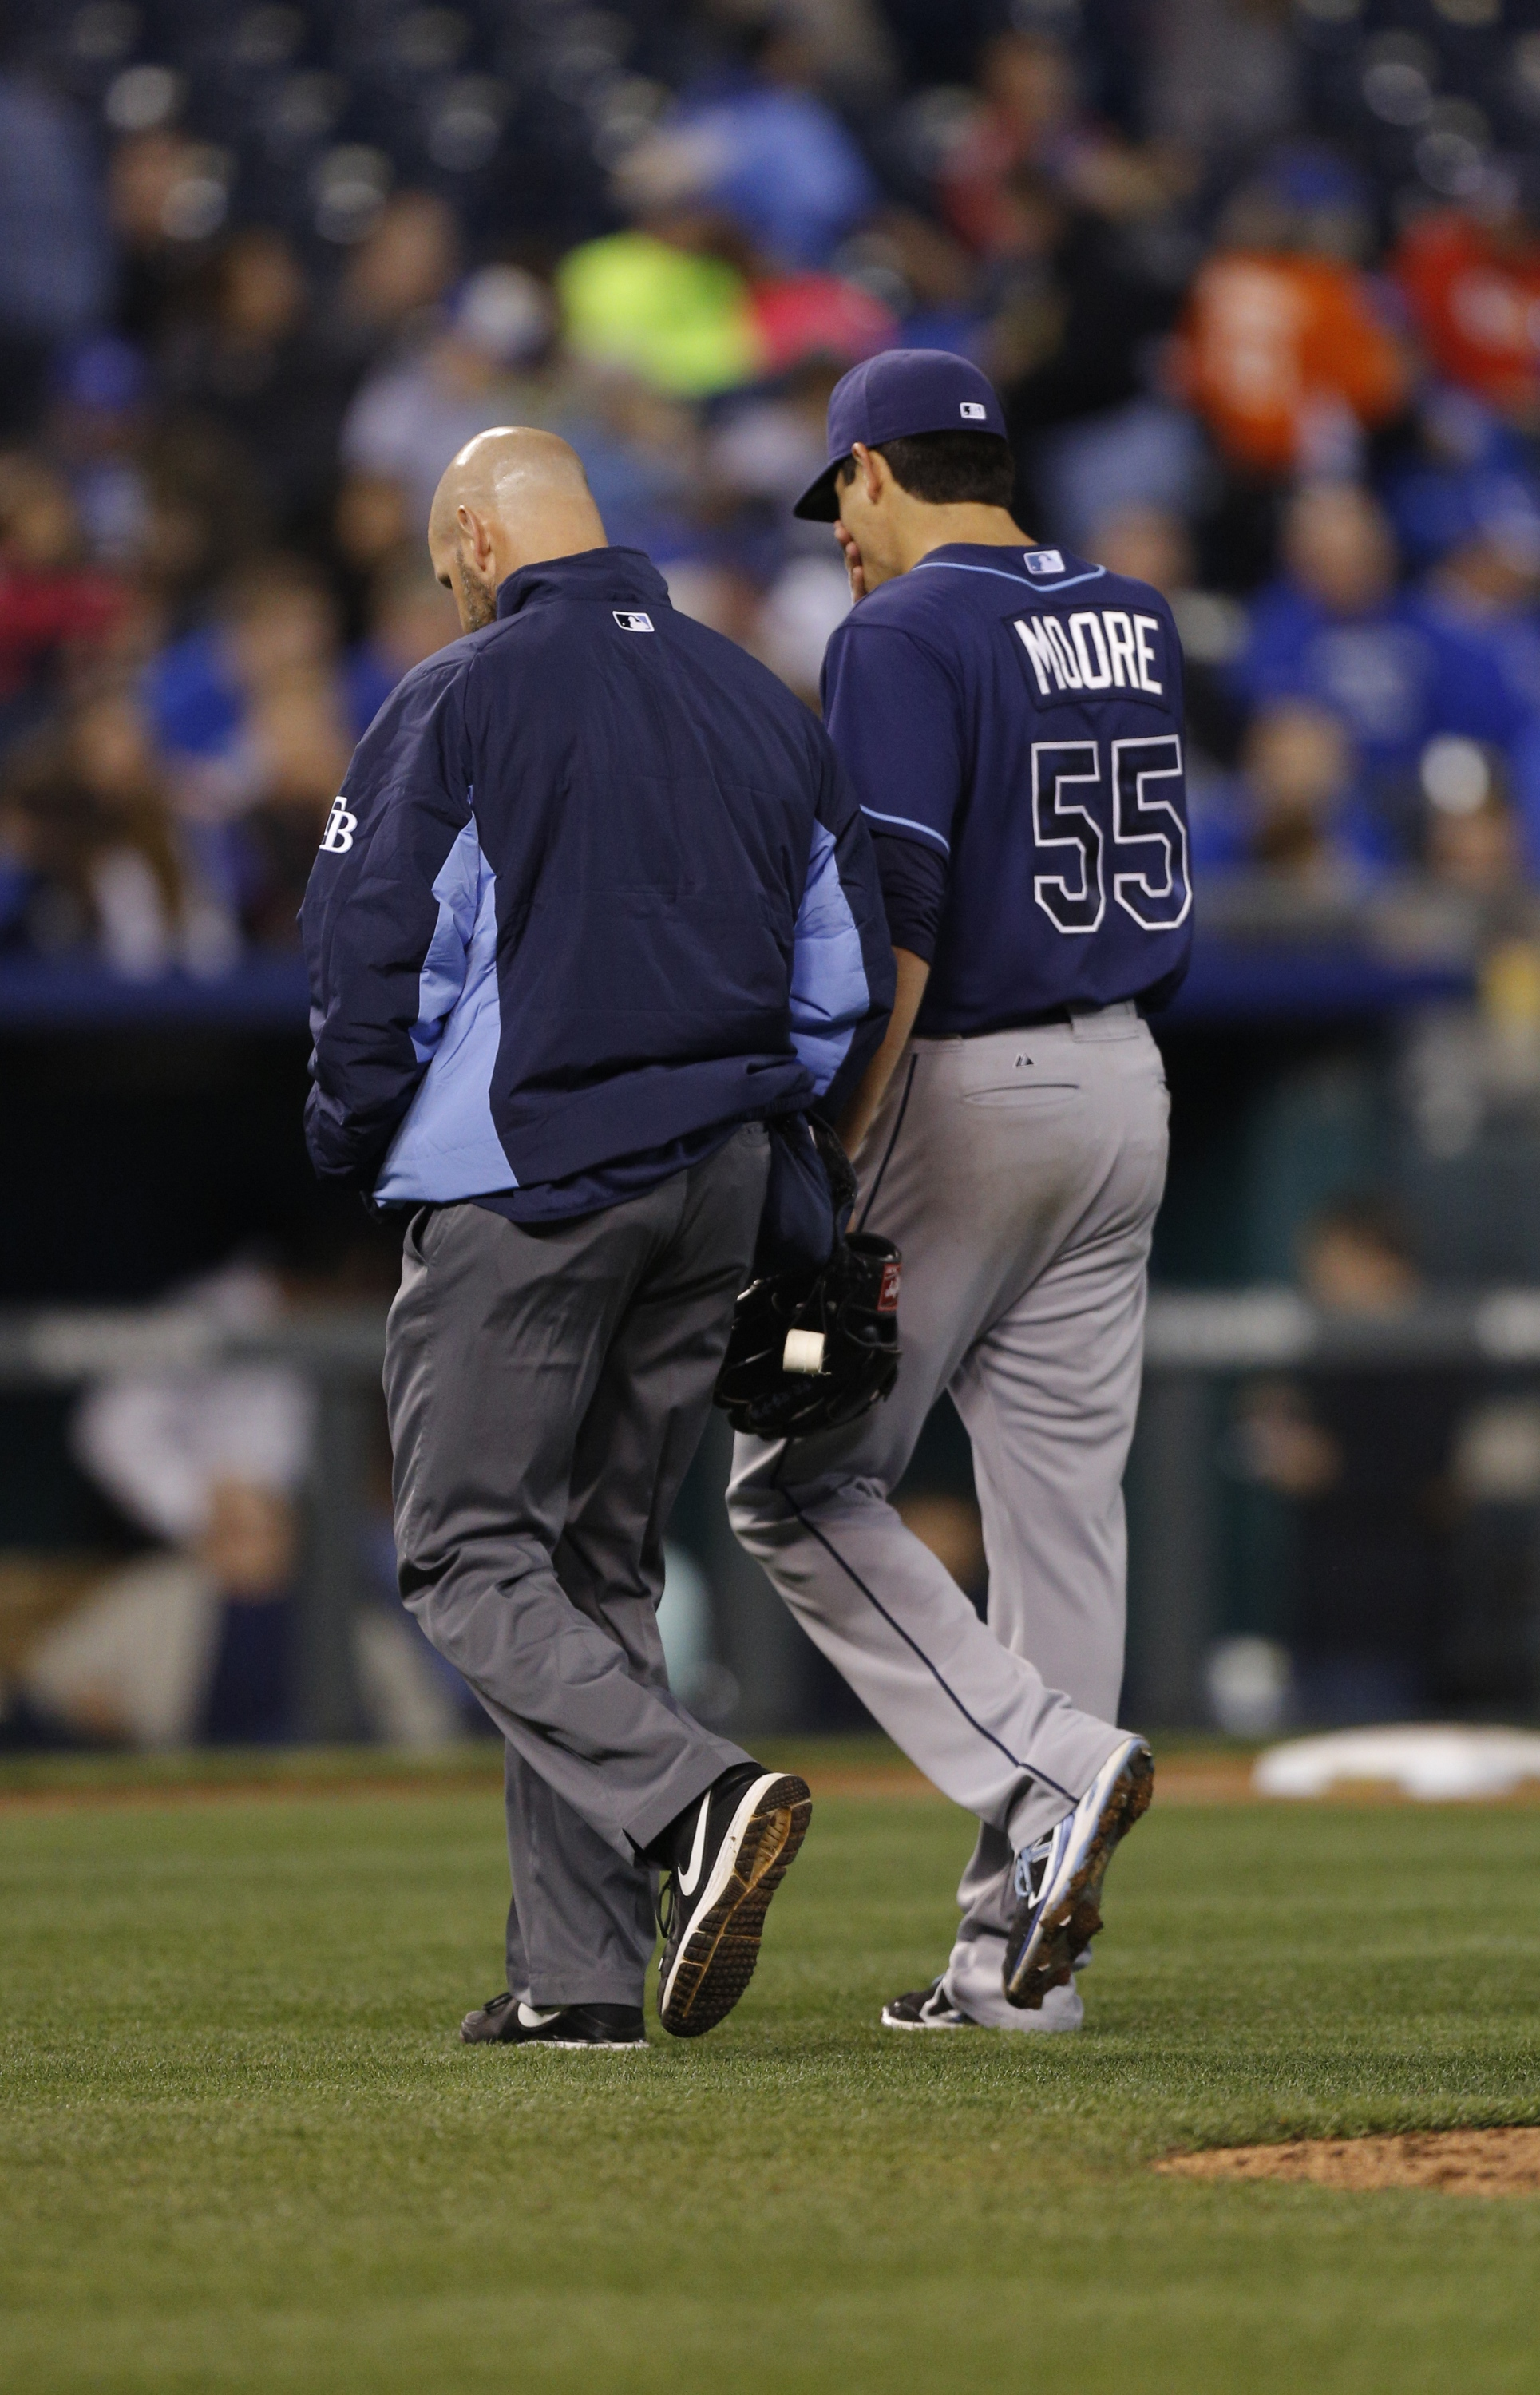 Matt Moore of the Rays elects to have Tommy John surgery, will …